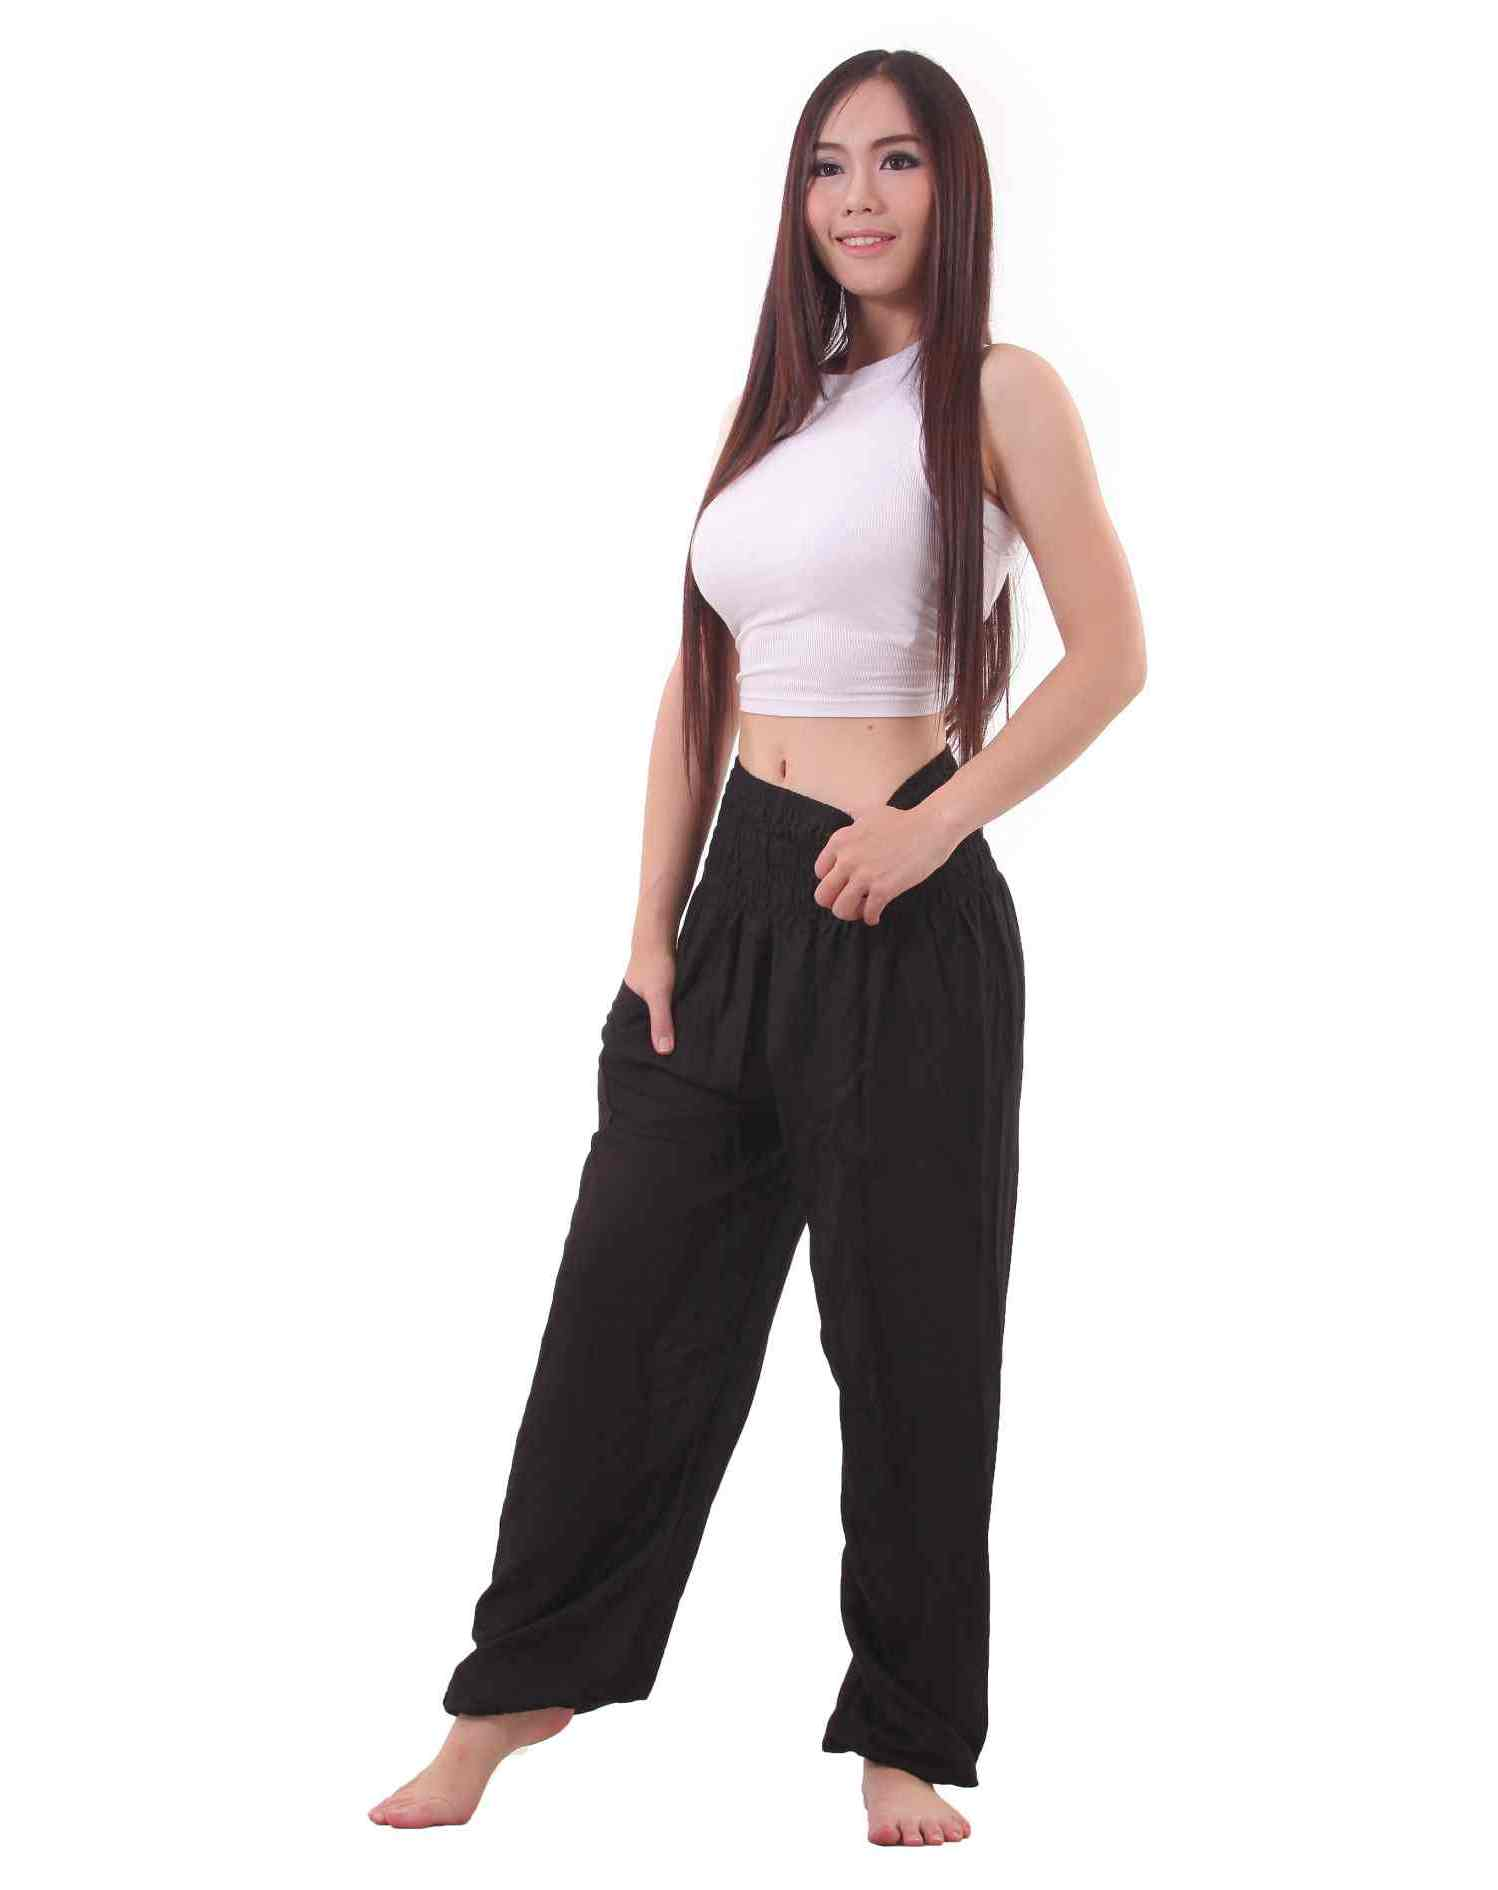 Black Harem Pants. Black is always in, shop from our collection of black women's harem pants. From red & gold accents to the classic black & white, we have the harem pants in black .